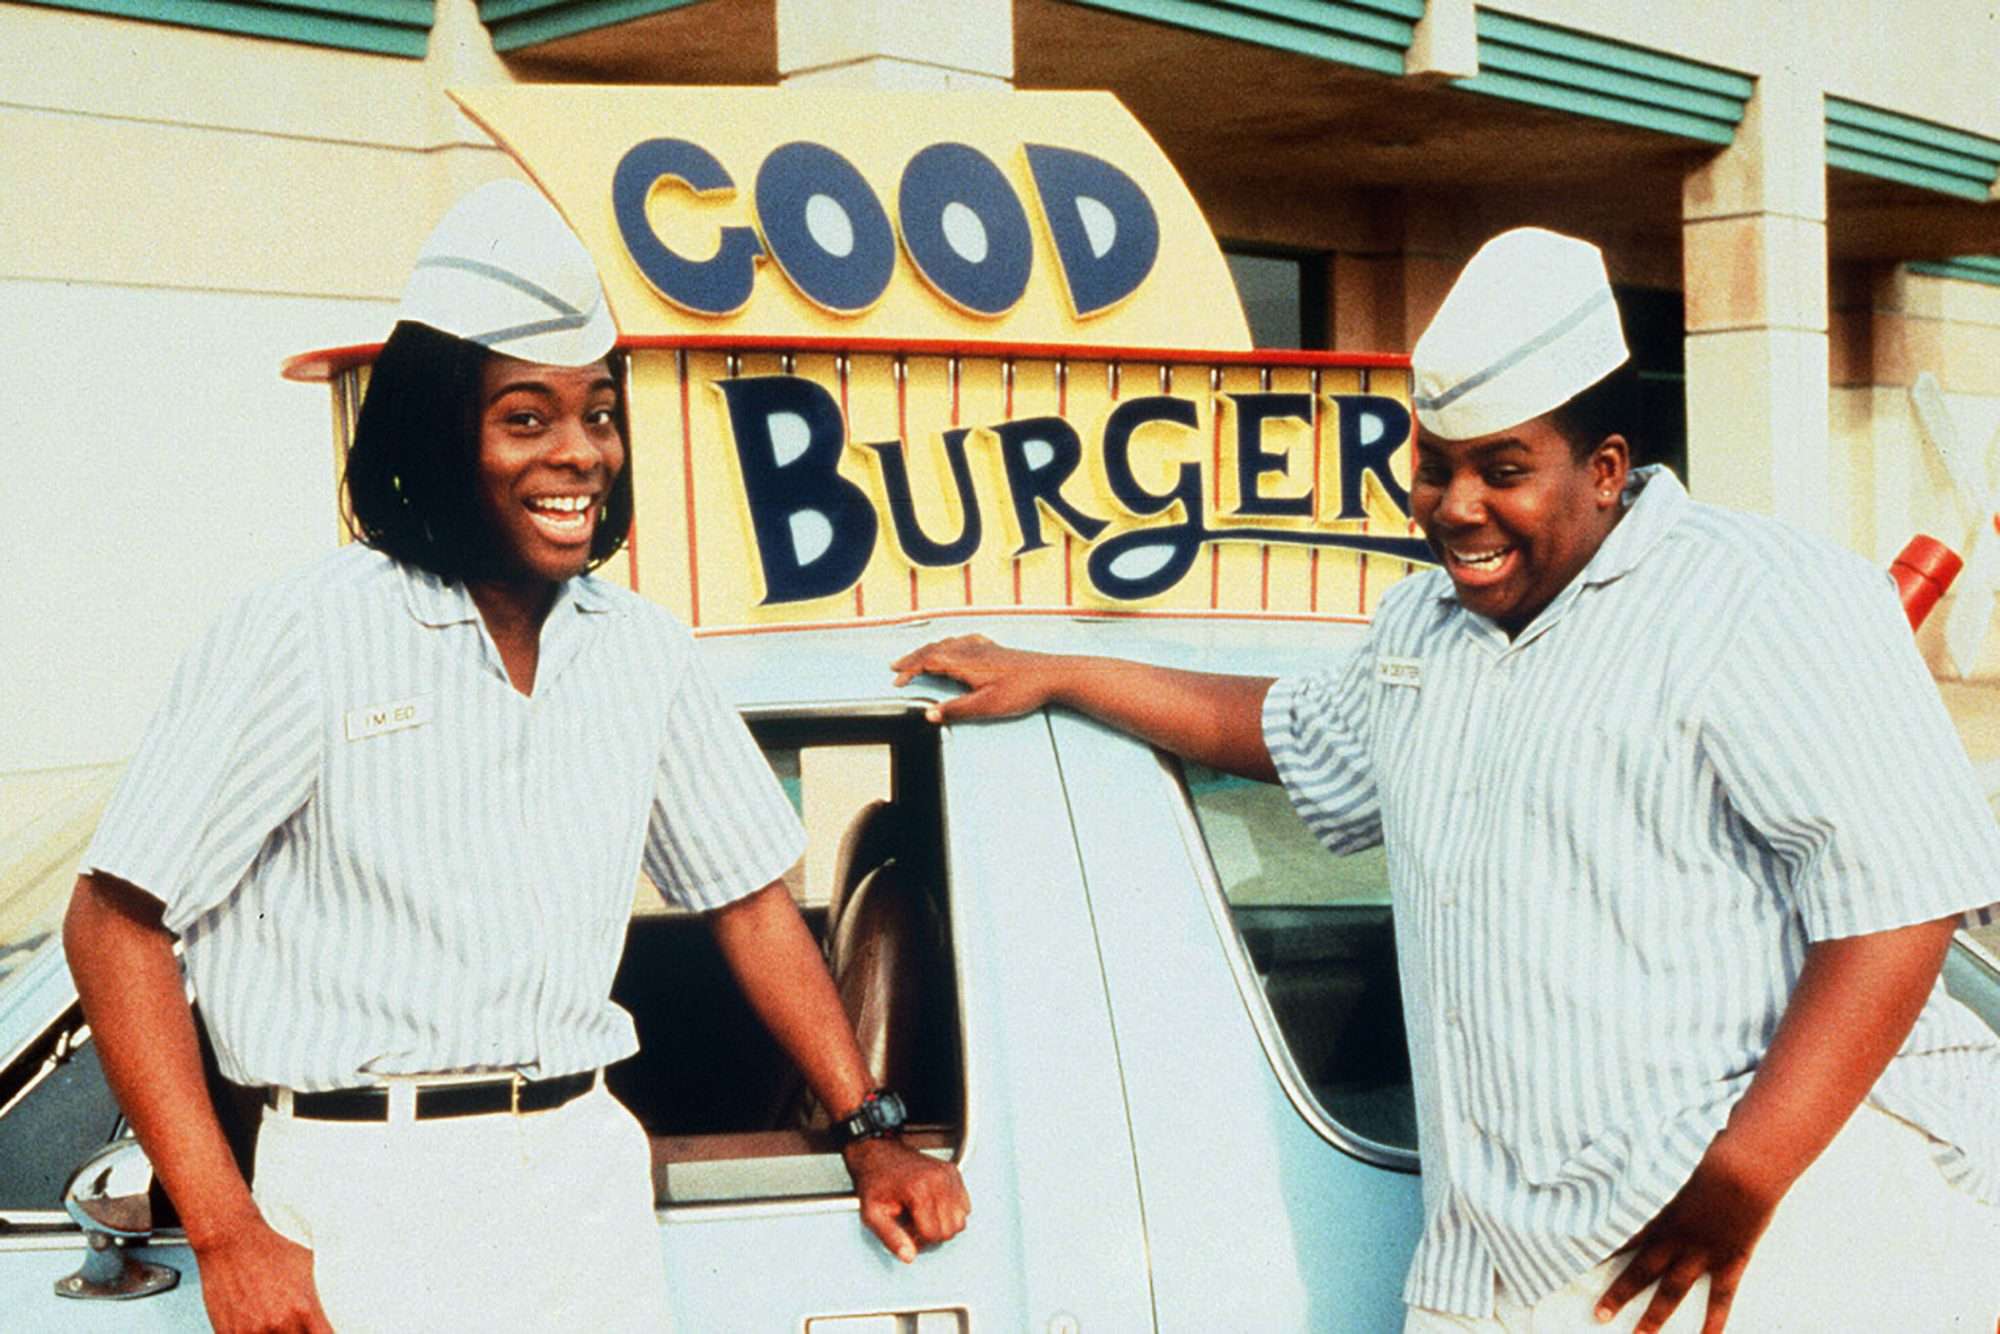 Nickelodeon Is Actually Launching a Good Burger Pop-Up Restaurant